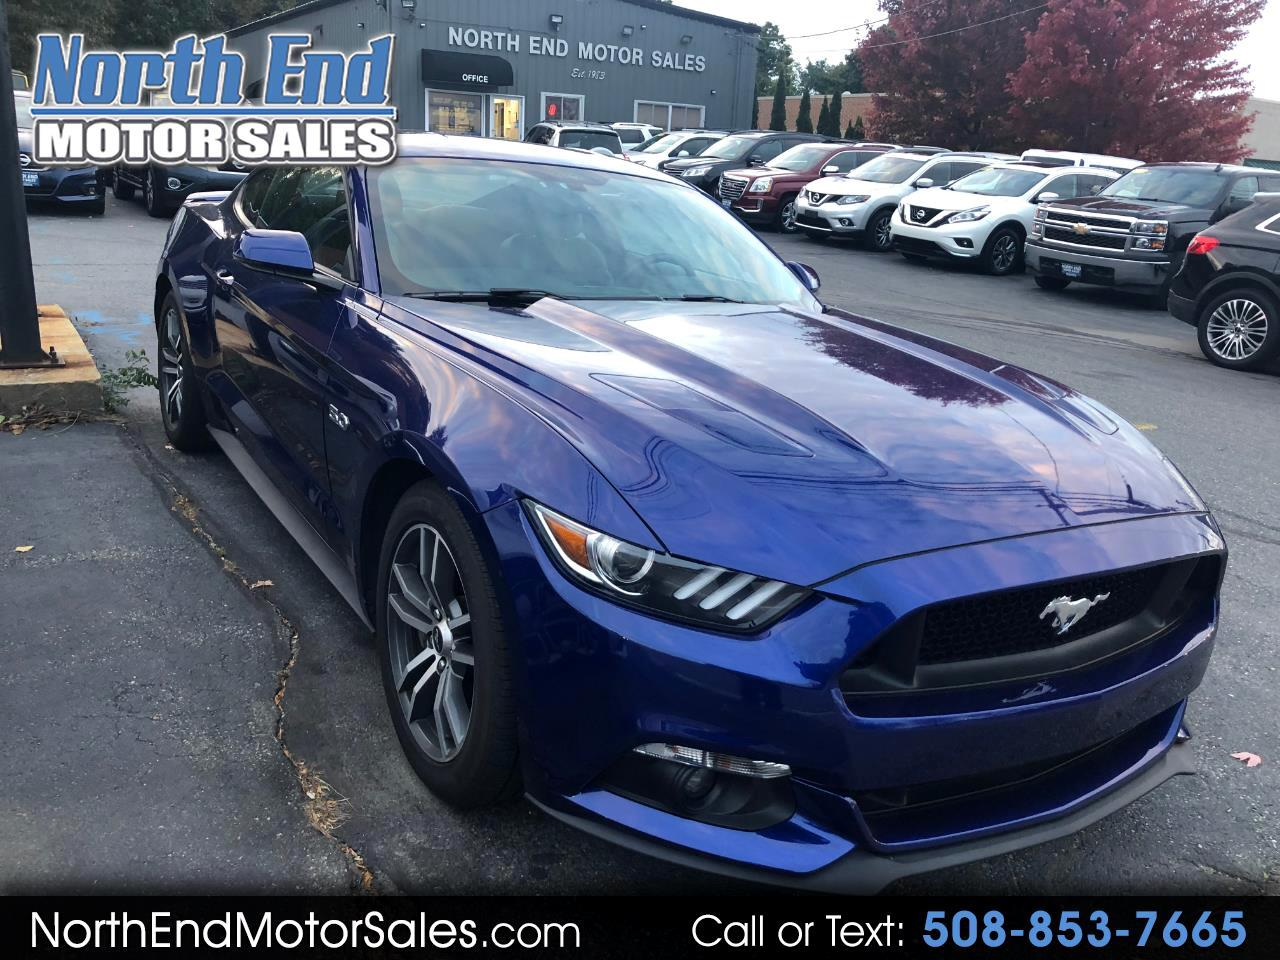 2016 Ford Mustang 2dr Cpe GT Premium